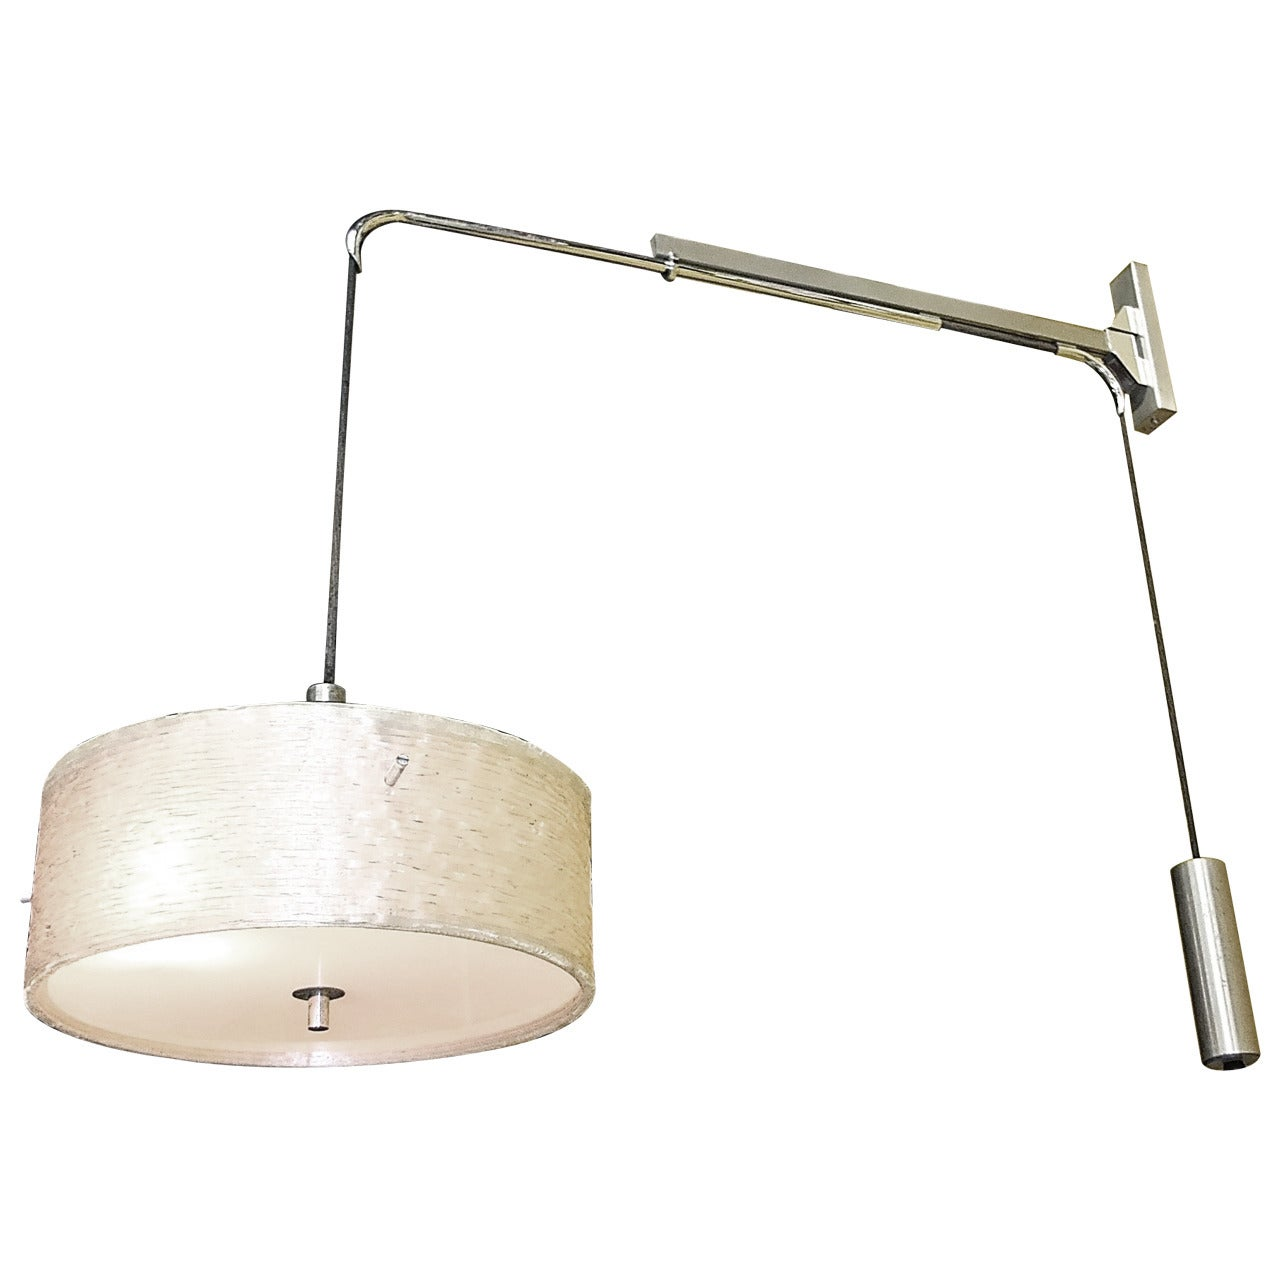 French 1950s Counterbalance Swing-Arm Wall Lamp by Lunel